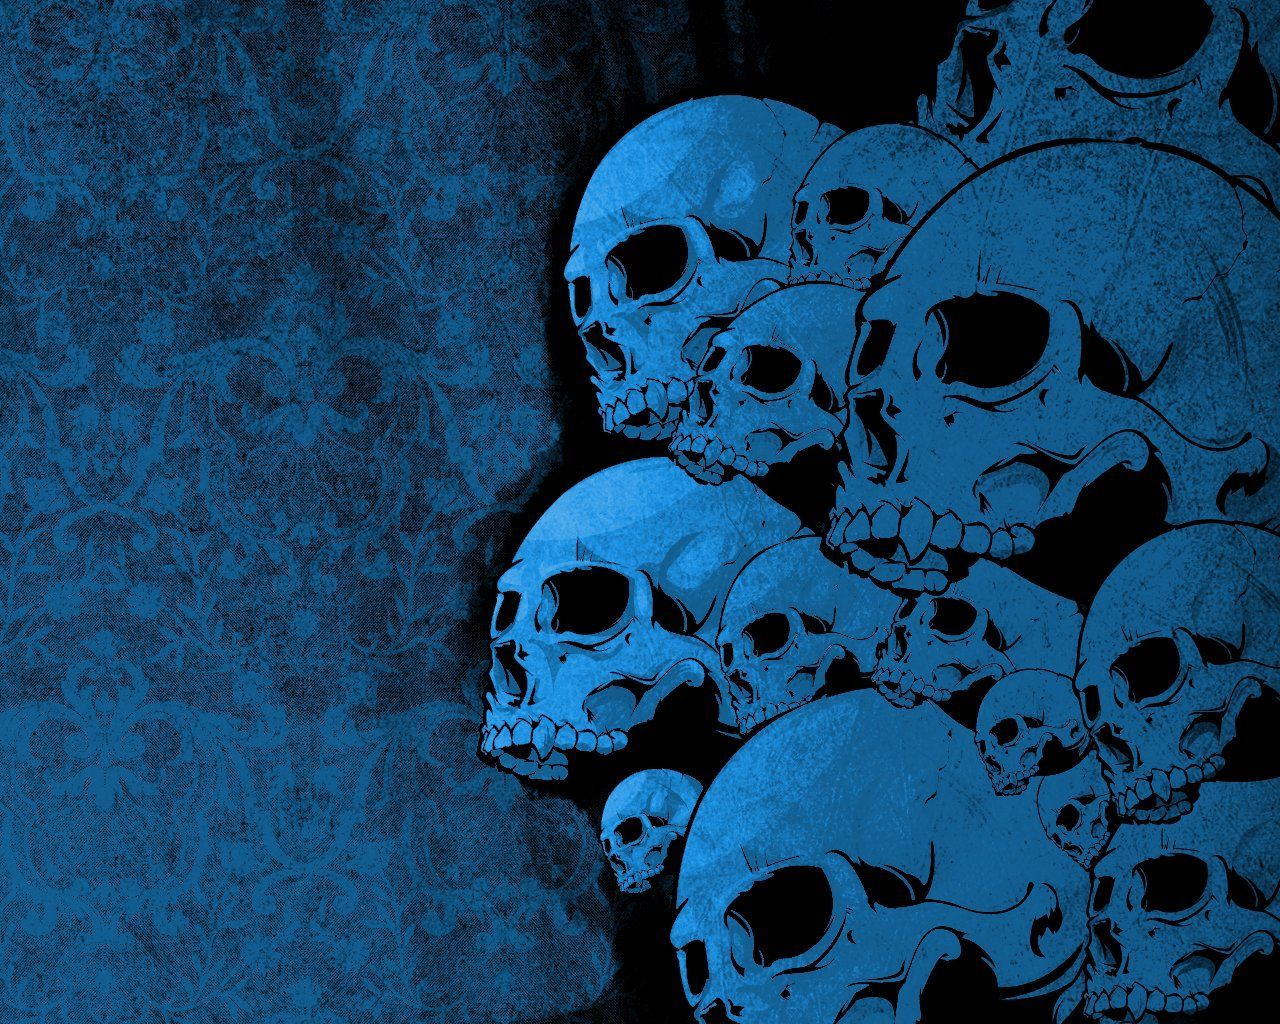 Blue Skull Wallpapers - Wallpaper Cave